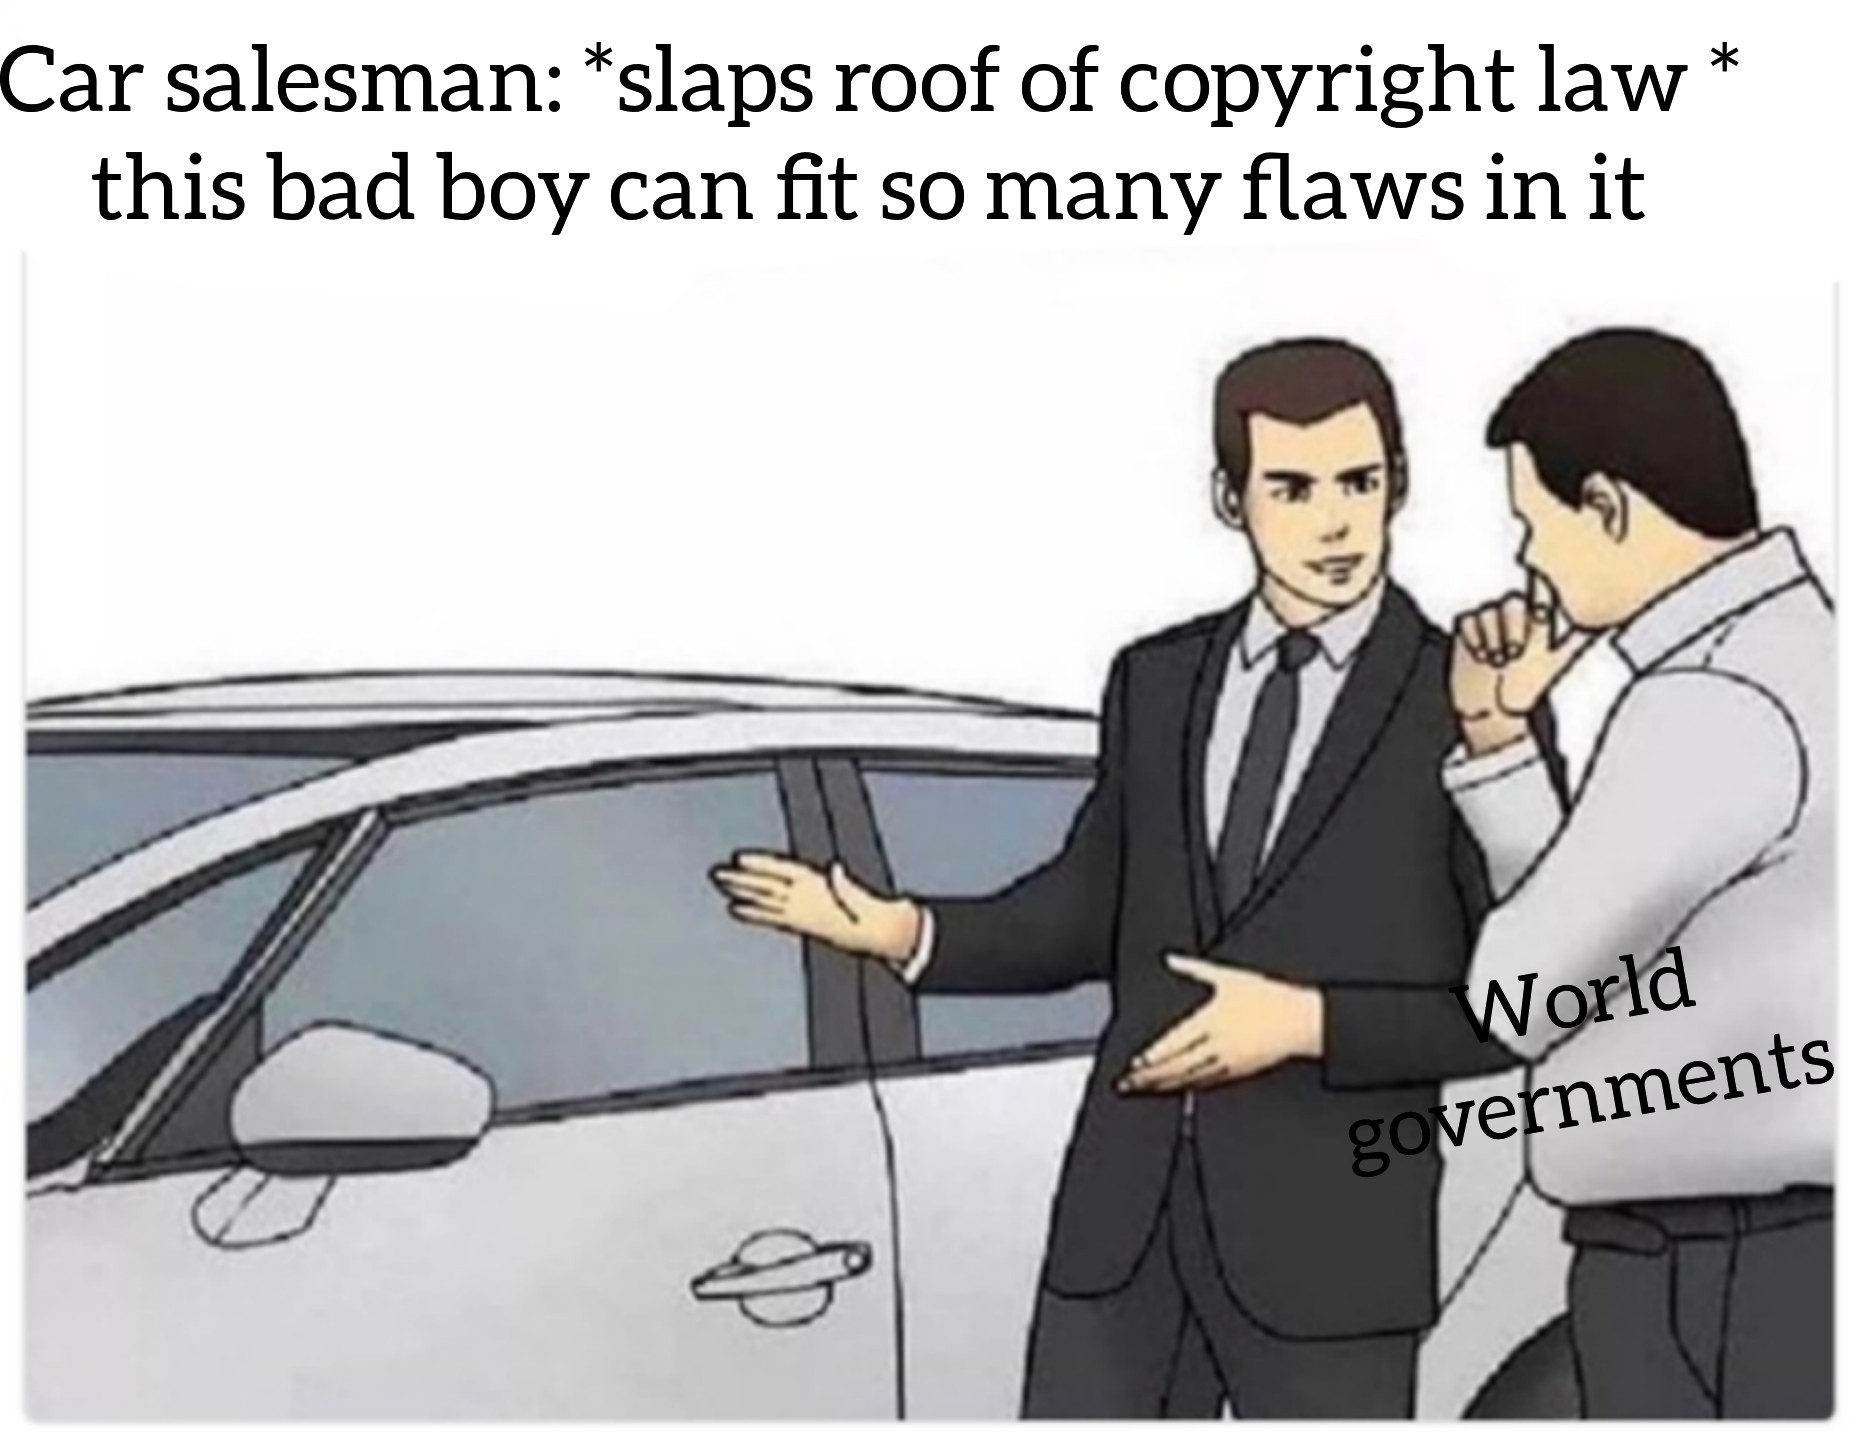 The title was sued and now is defending himself in court - meme